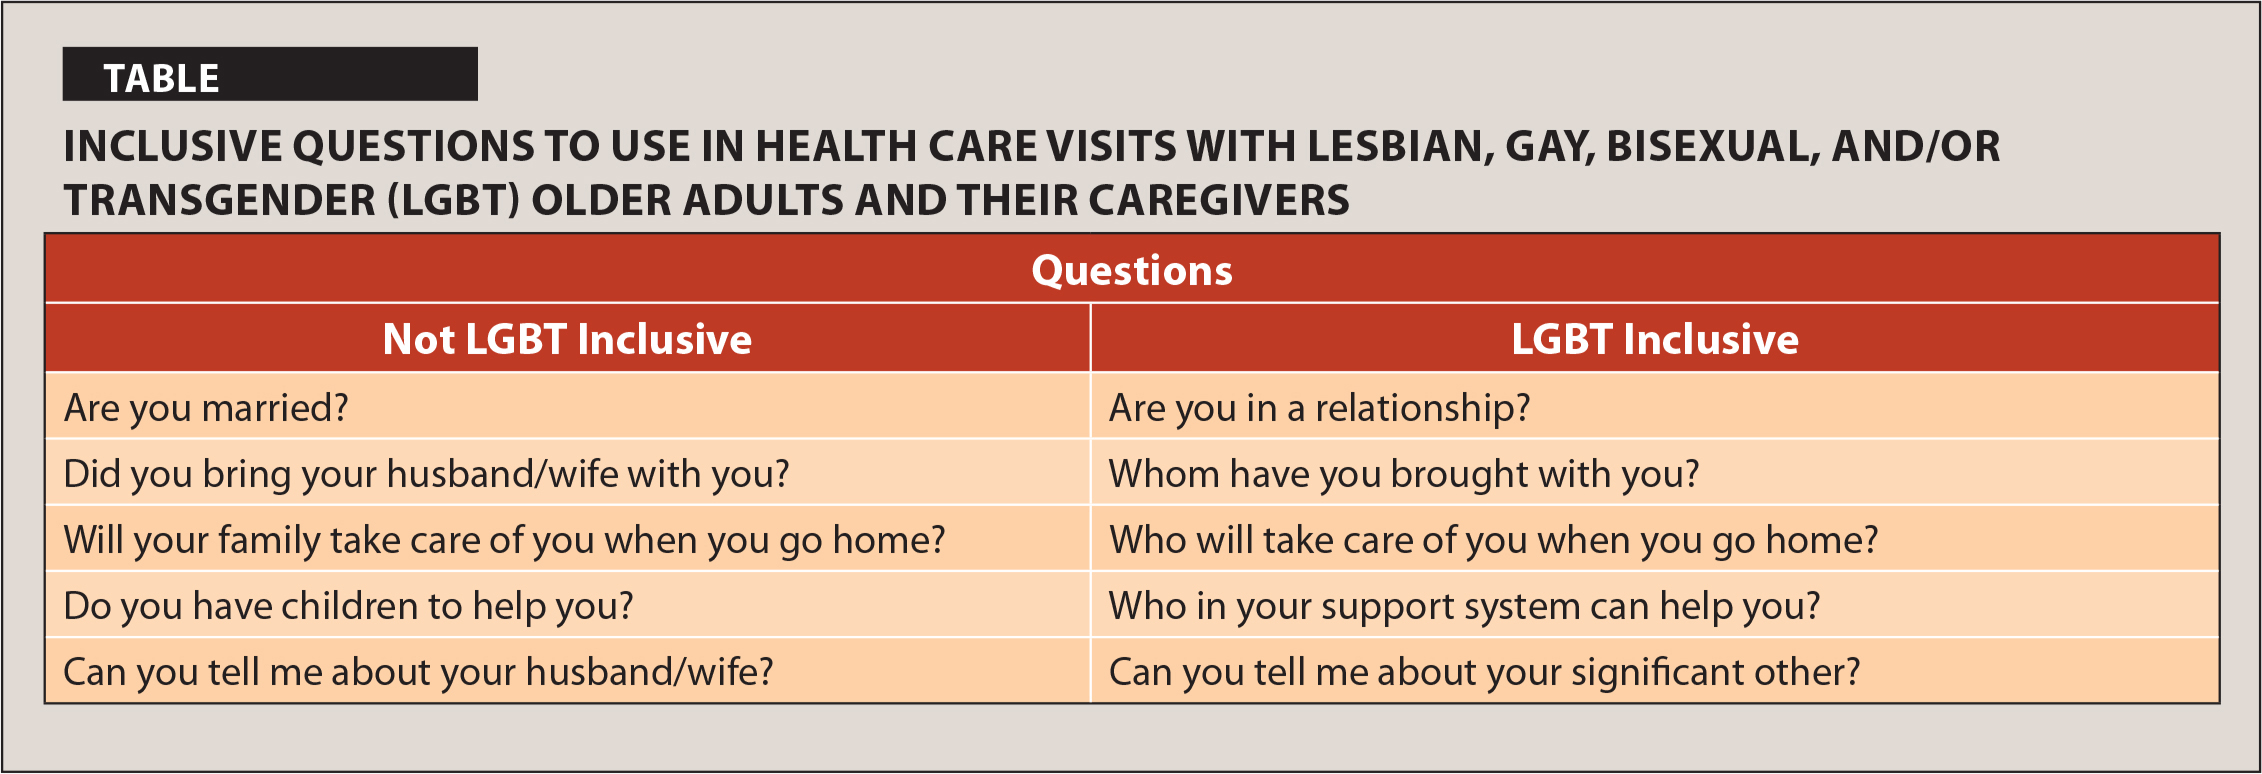 Inclusive Questions to use in Health Care Visits with Lesbian, Gay, Bisexual, and/or Transgender (LGBT) Older Adults and their Caregivers